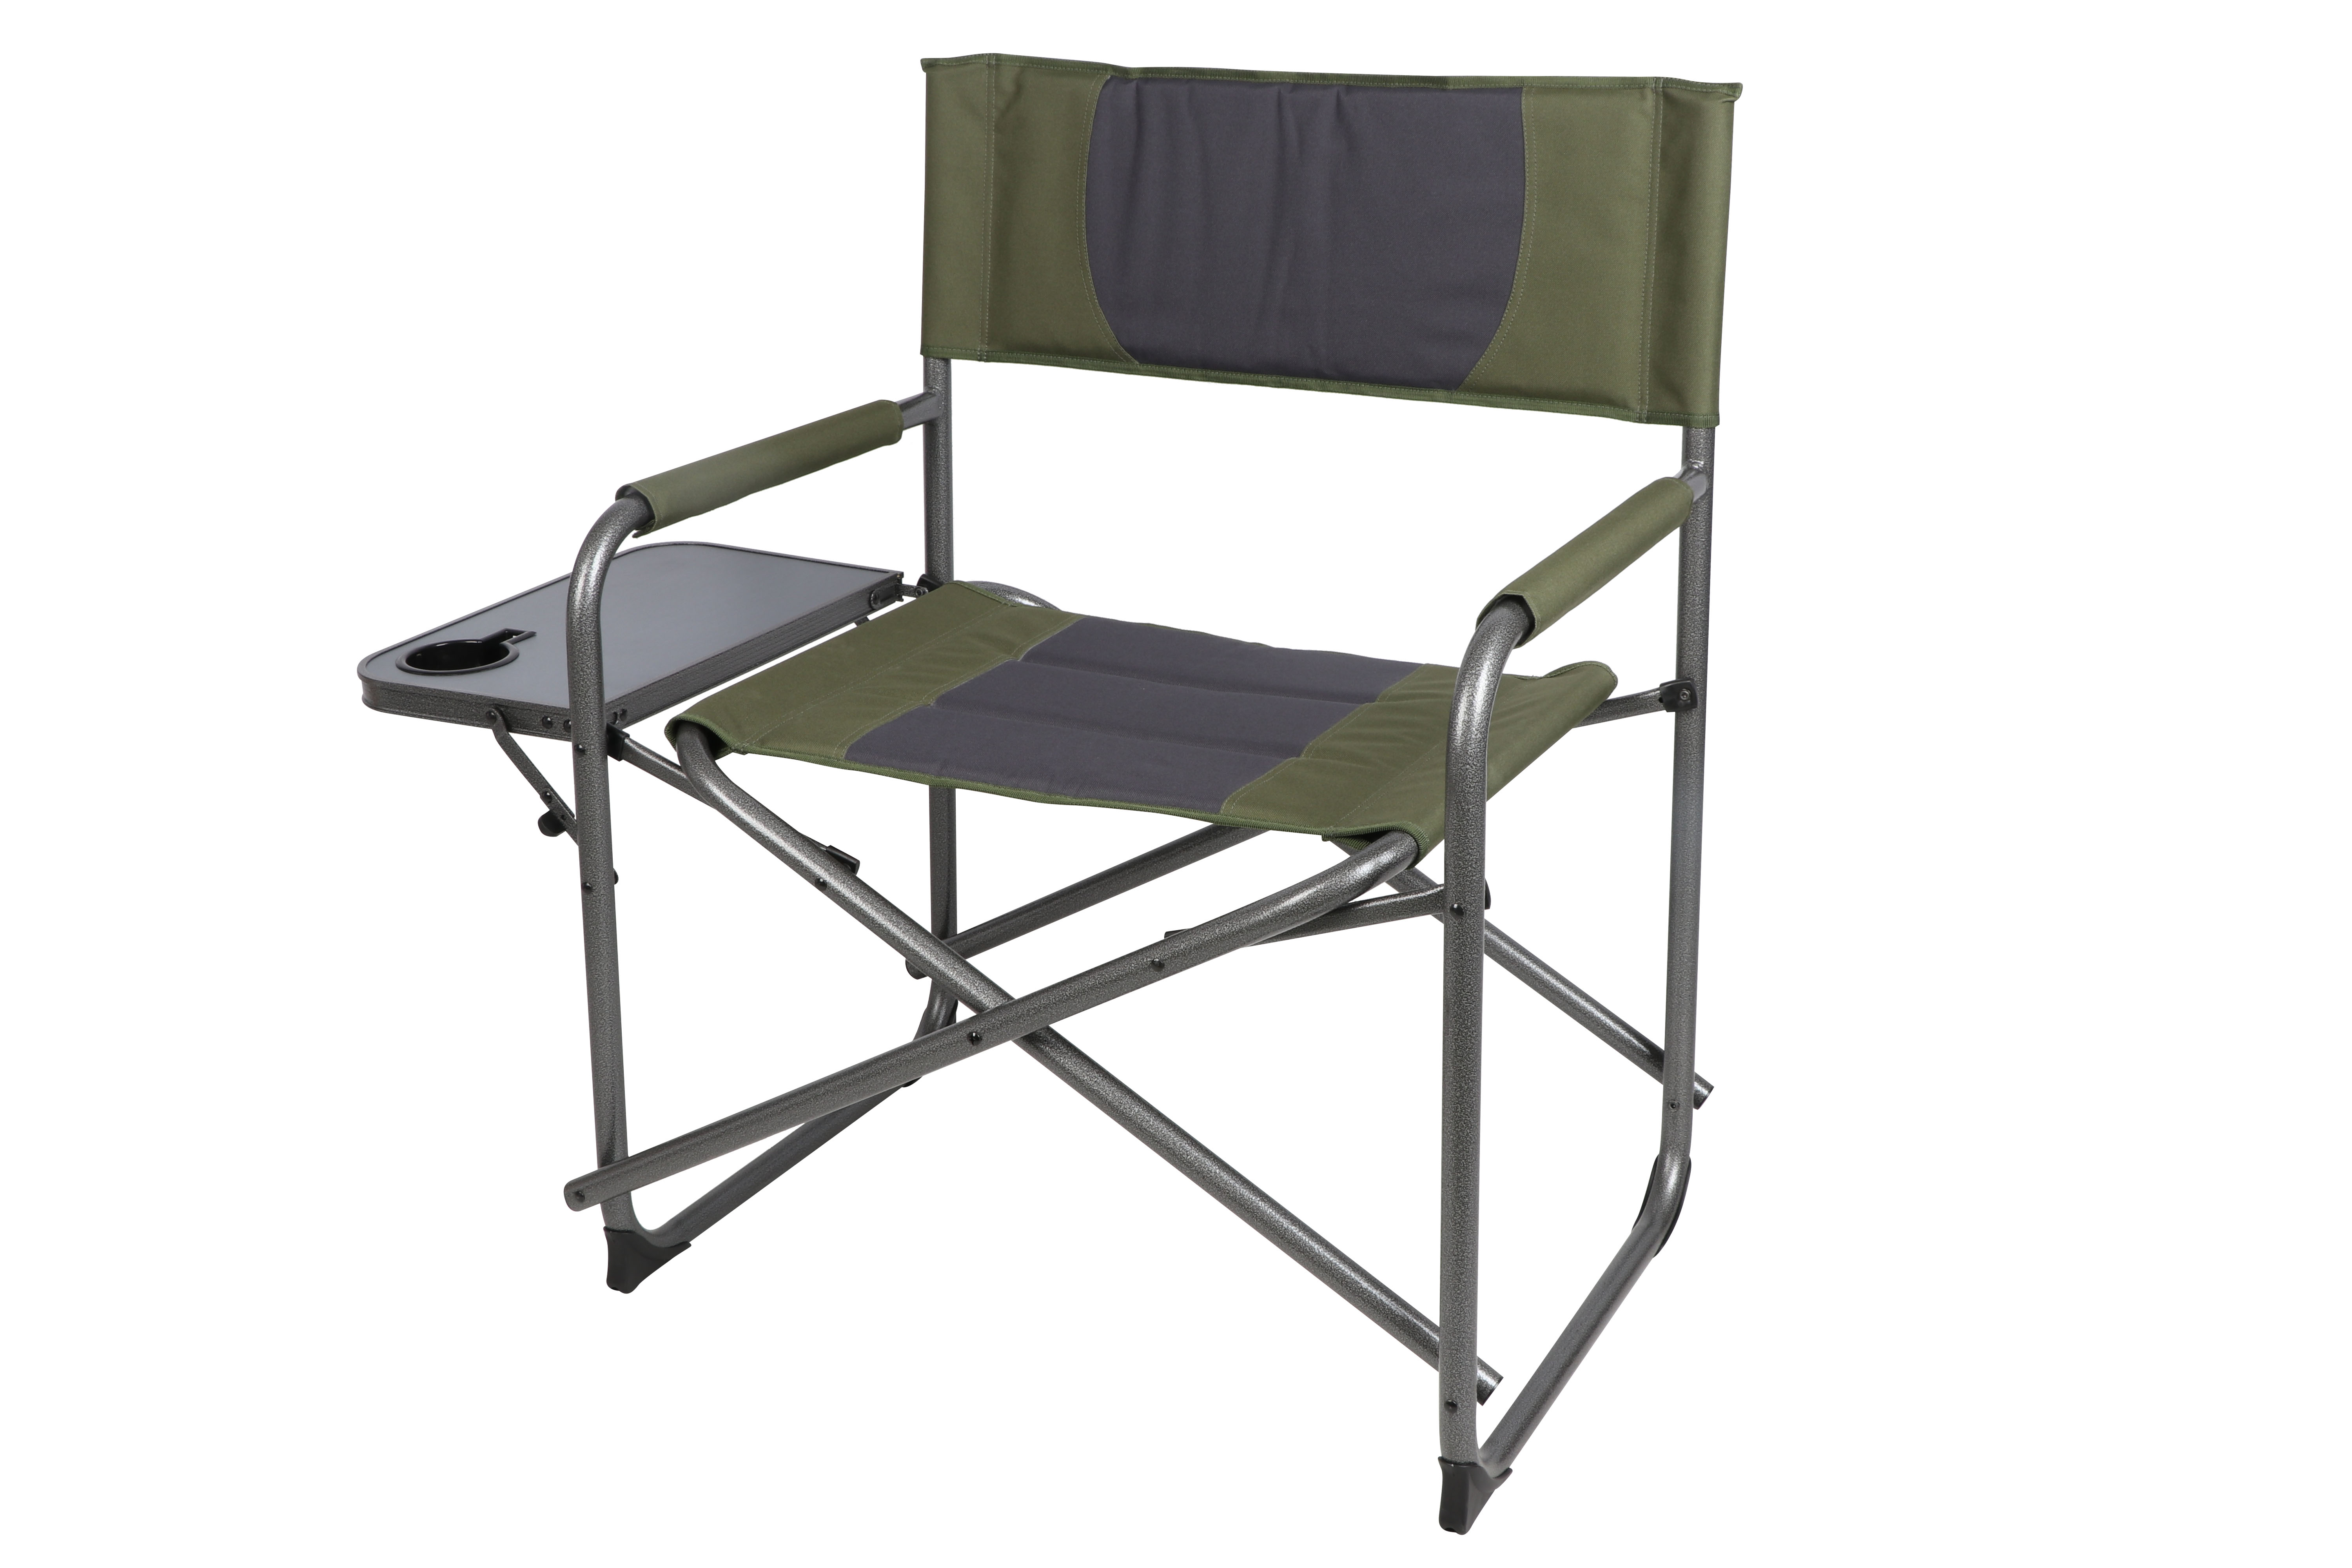 Sensational Ozark Trail Oversized Directors Camping Chair With Side Table Green Grey Walmart Com Ibusinesslaw Wood Chair Design Ideas Ibusinesslaworg